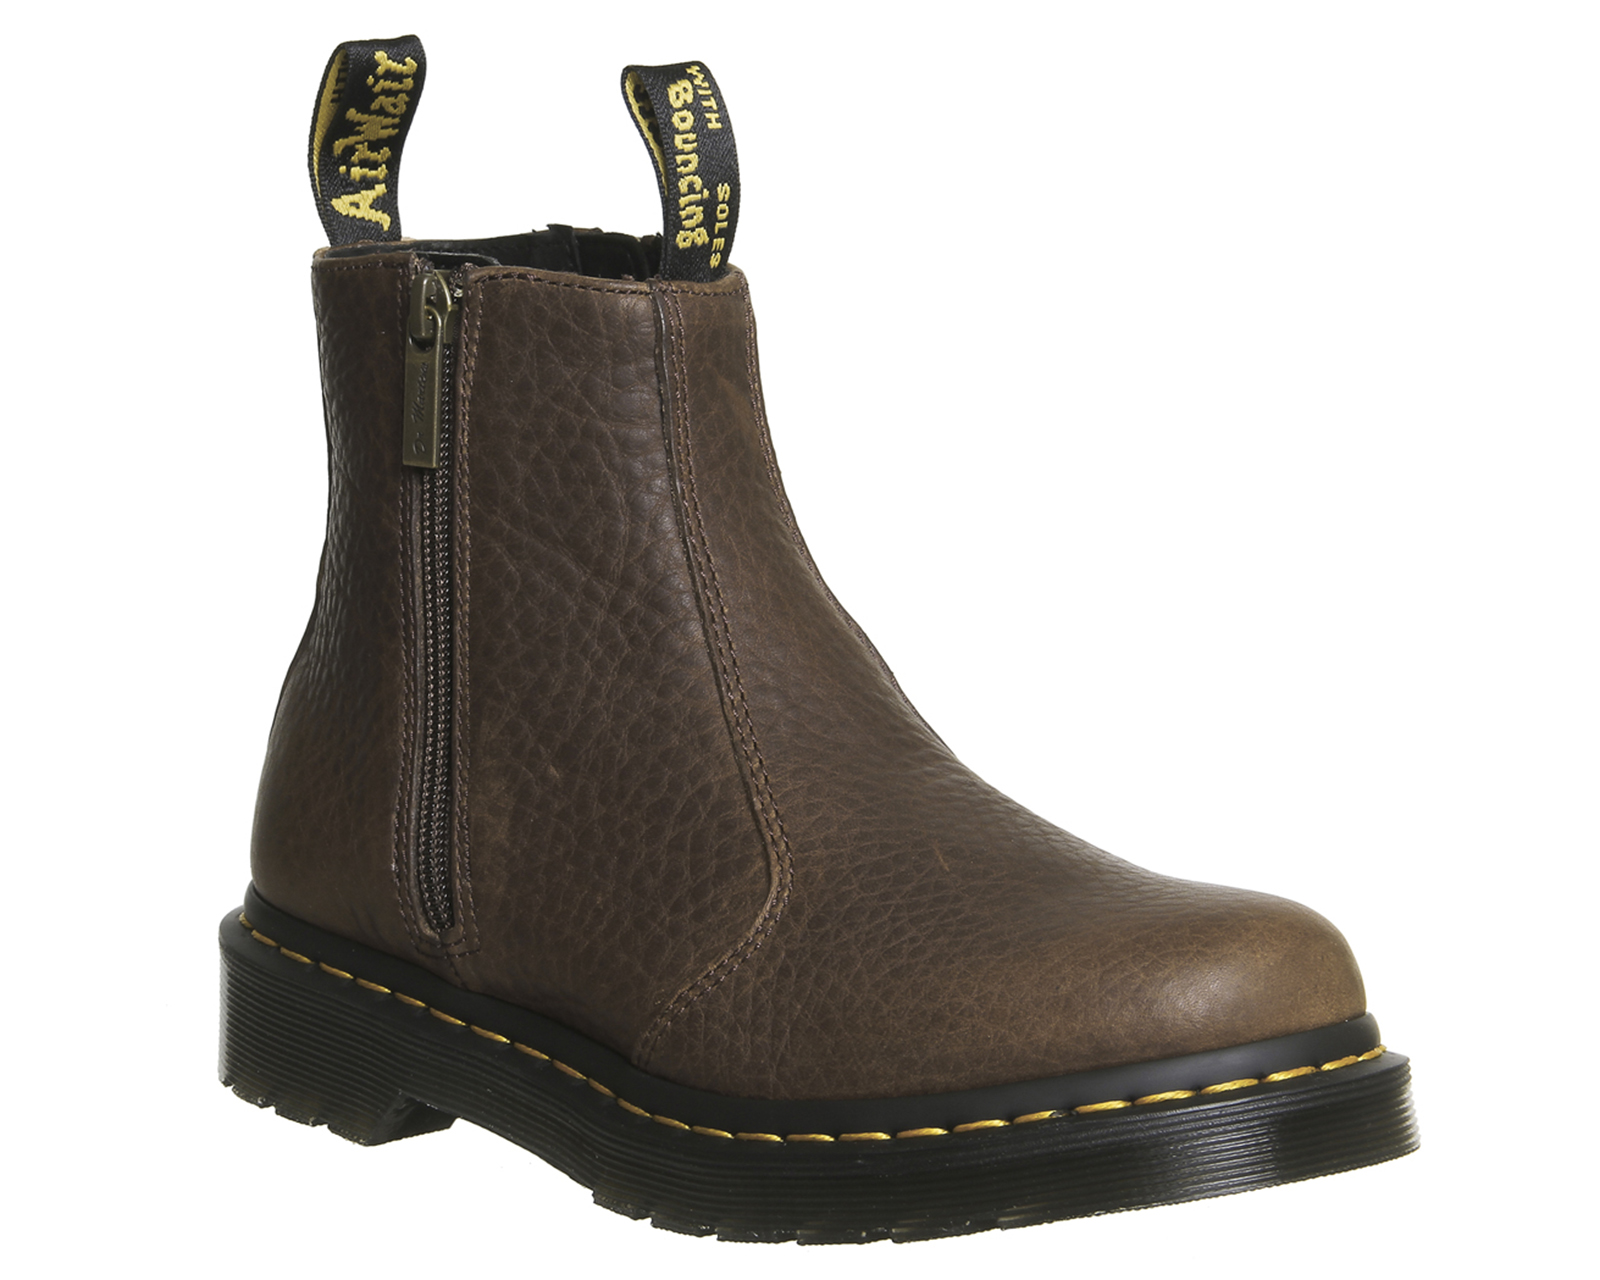 womens dr martens 2976 zip chelsea boots dark brown leather boots ebay. Black Bedroom Furniture Sets. Home Design Ideas